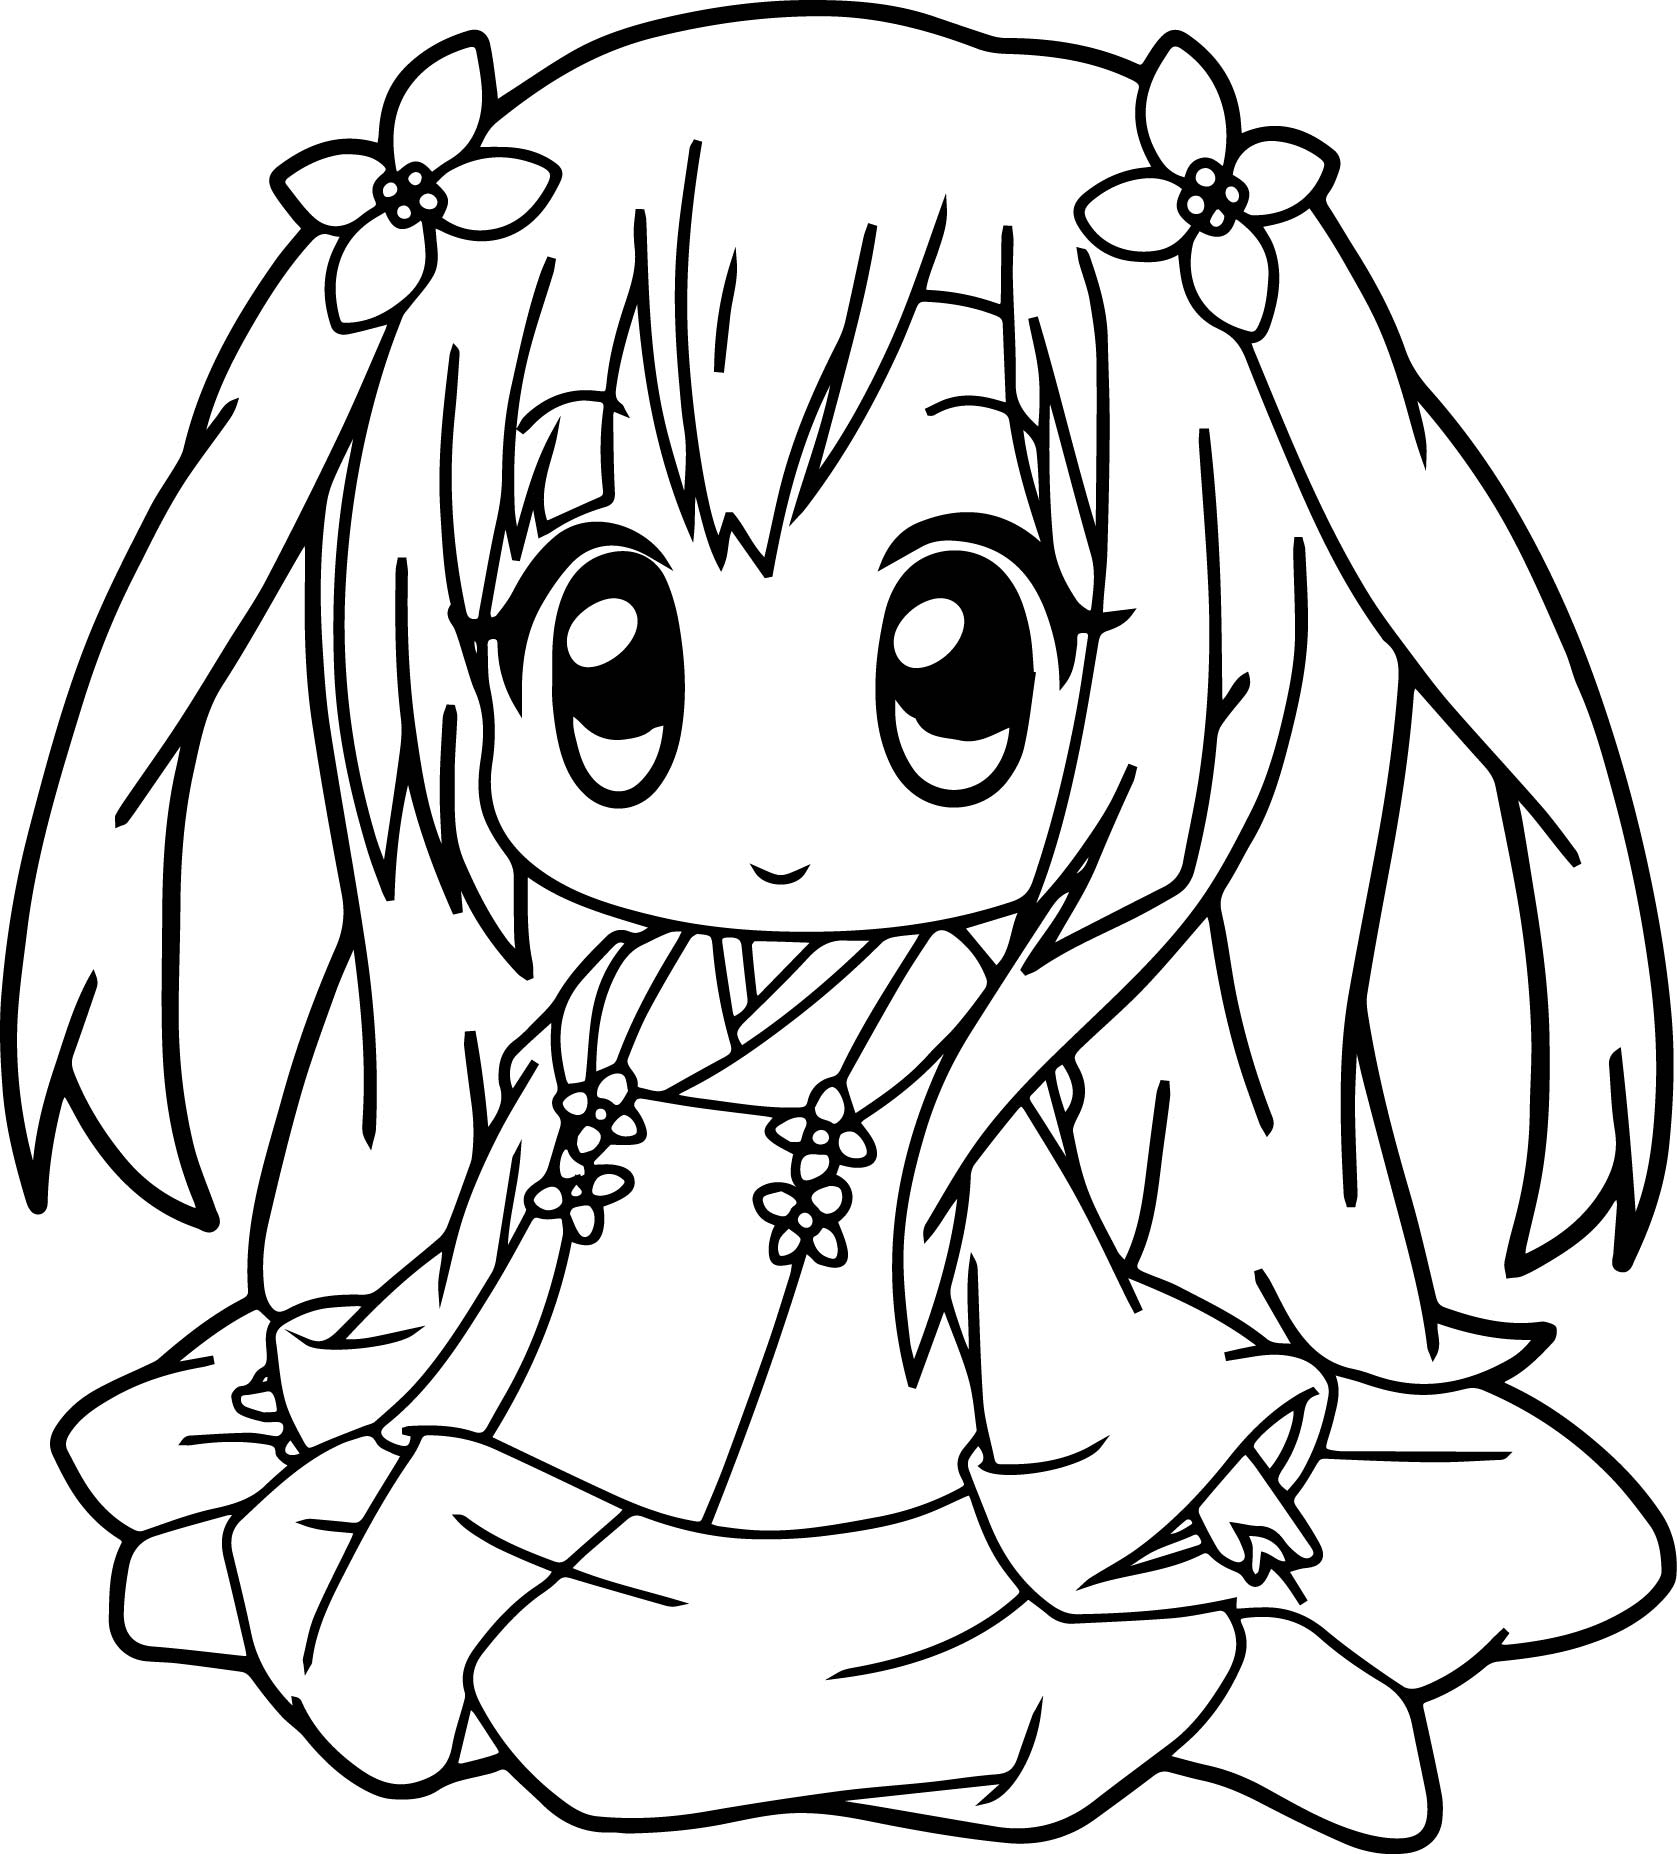 very cute anime coloring page wecoloringpage